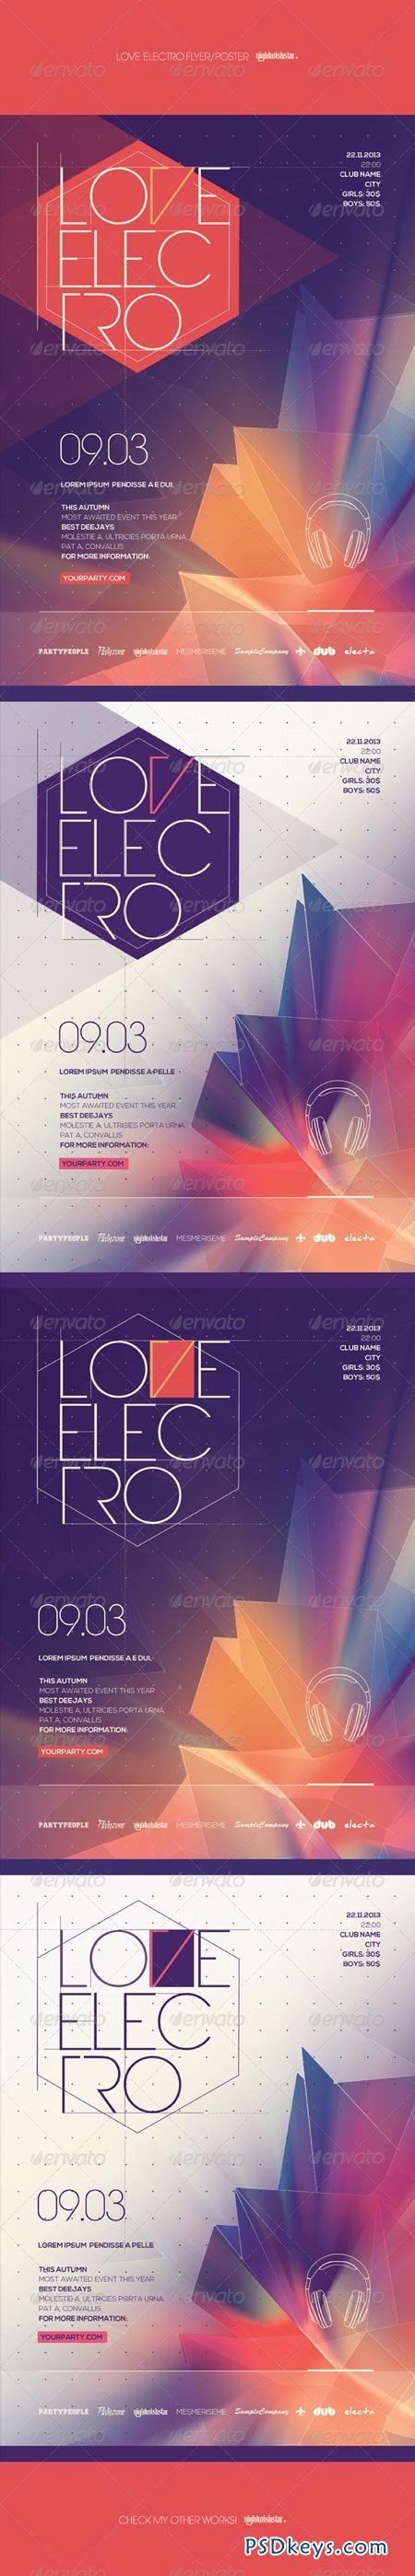 Love Electro Poster Flyer 7024227